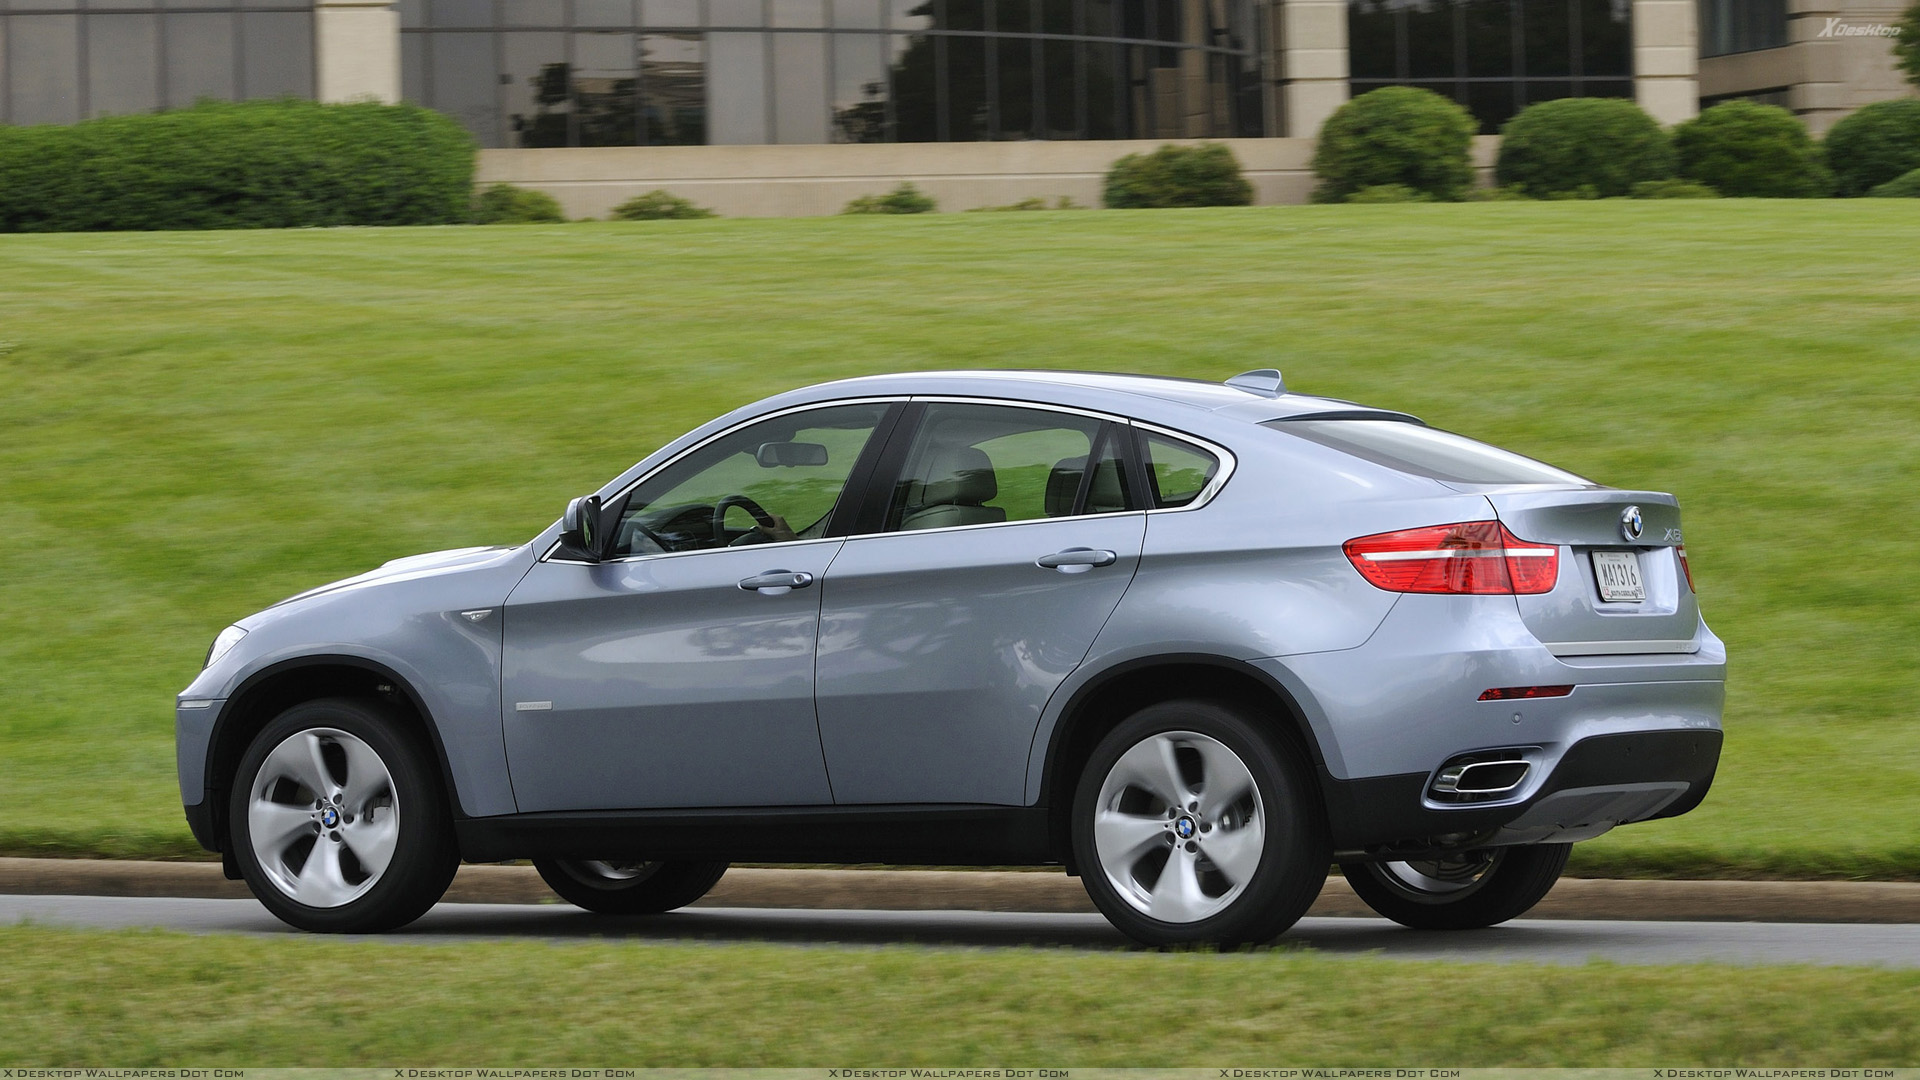 You Are Viewing Wallpaper Titled 2010 BMW ActiveHybrid X6